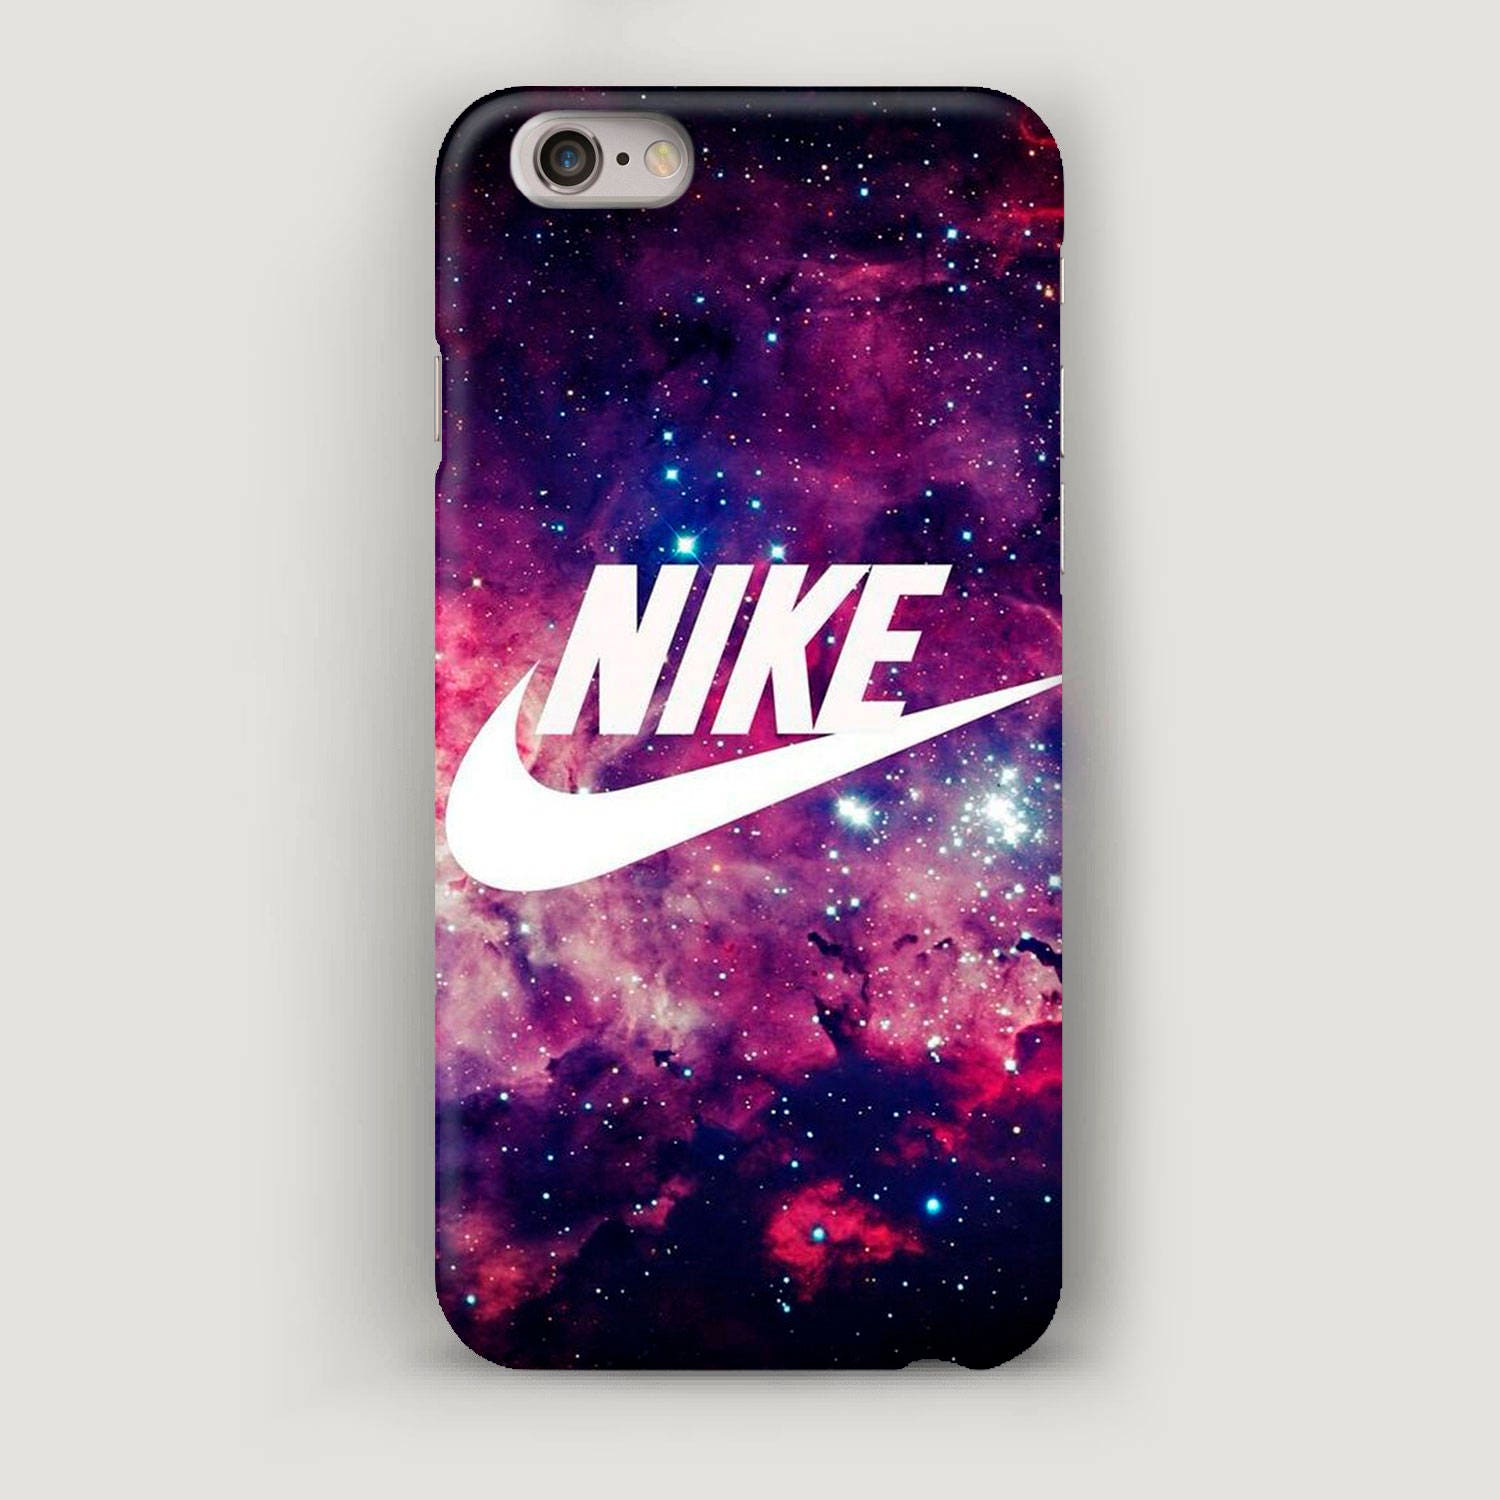 20 best Nike Logo Case images on Pinterest | Nike logo, S4 case ...